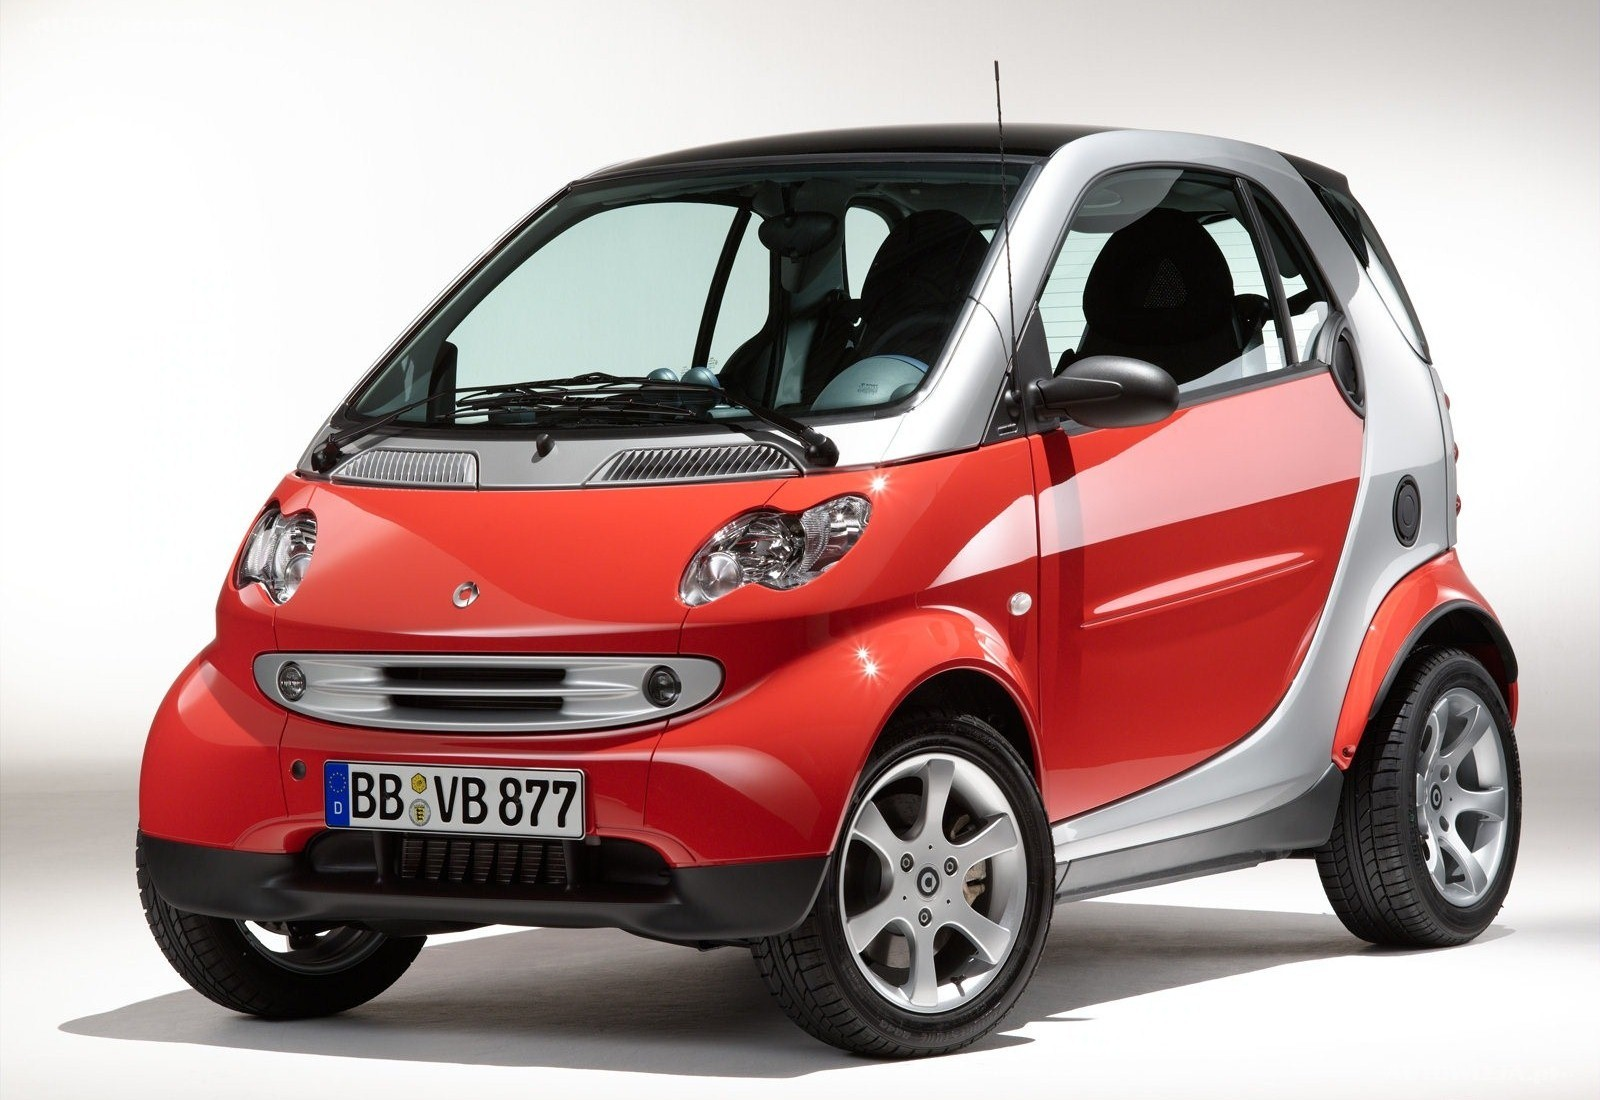 2005 Smart fortwo coupe photo - 1